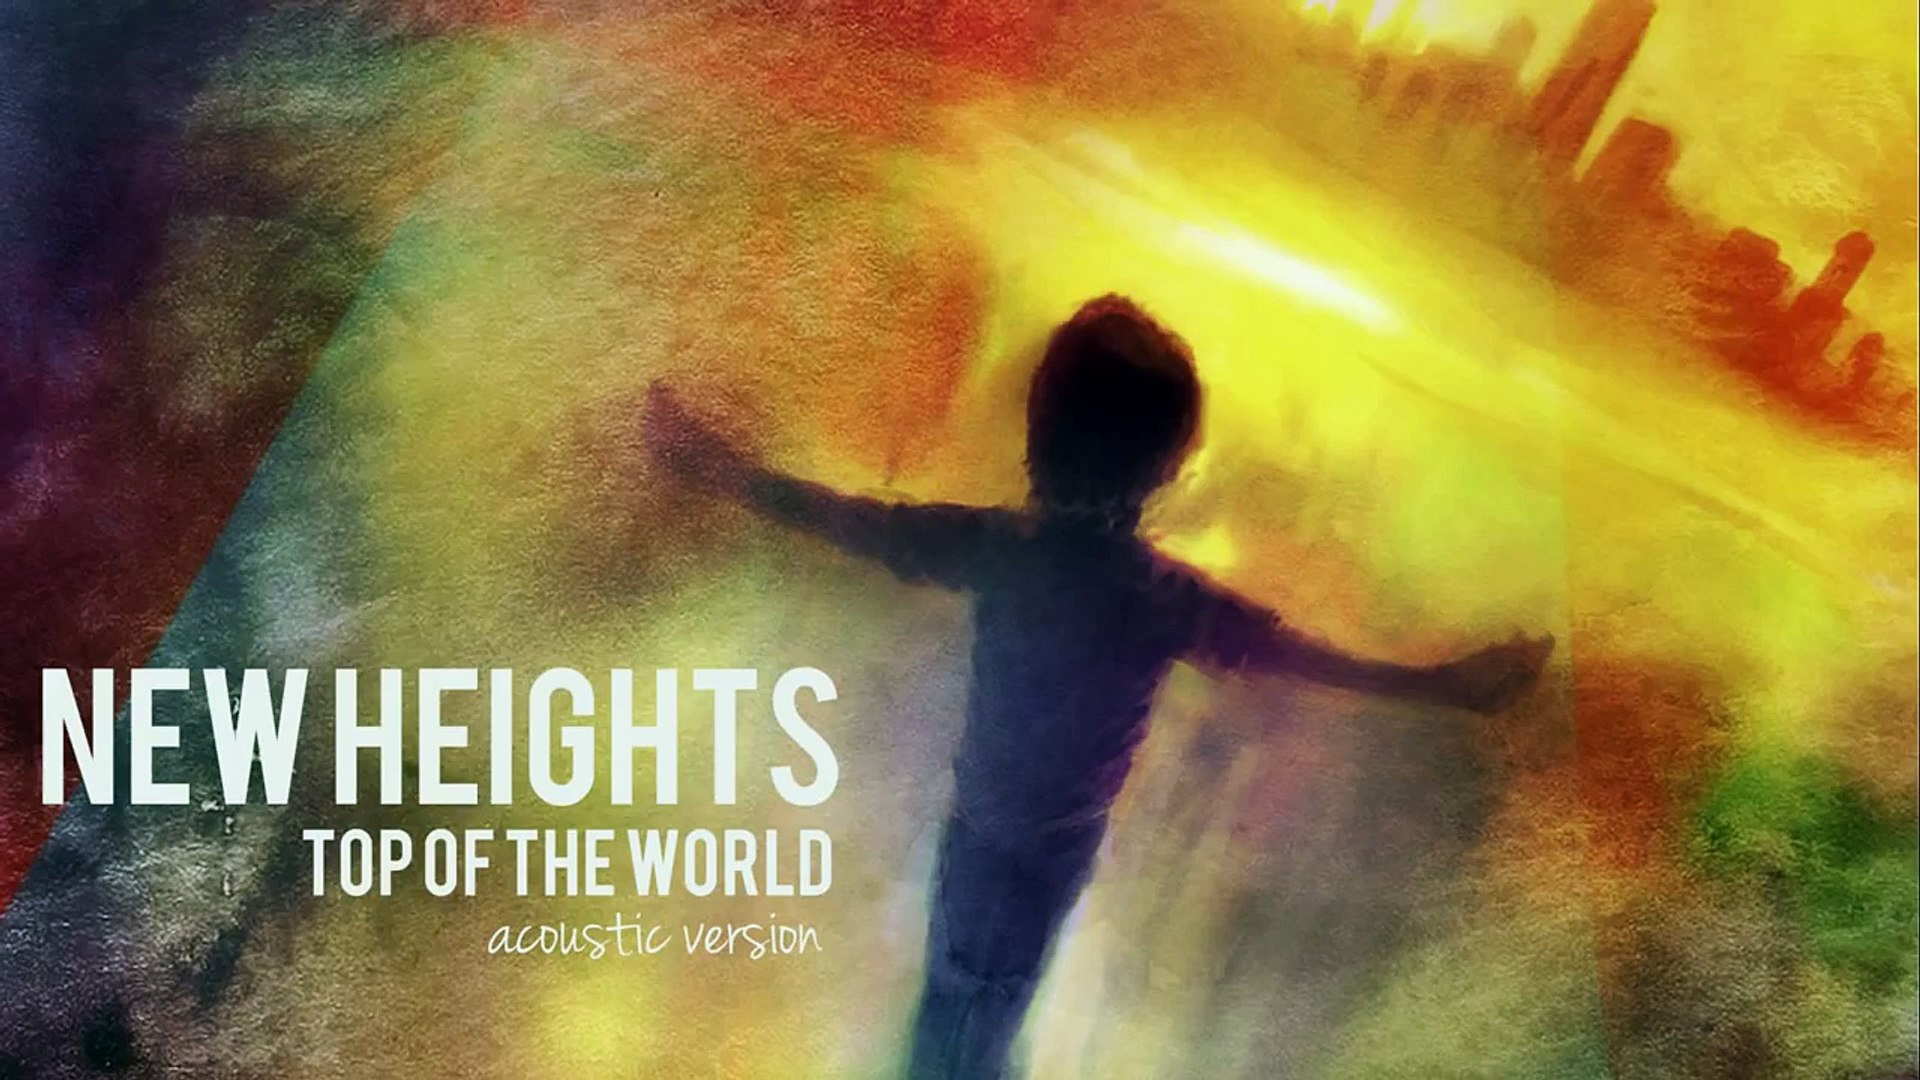 New Heights - Top Of The World (Acoustic Version)